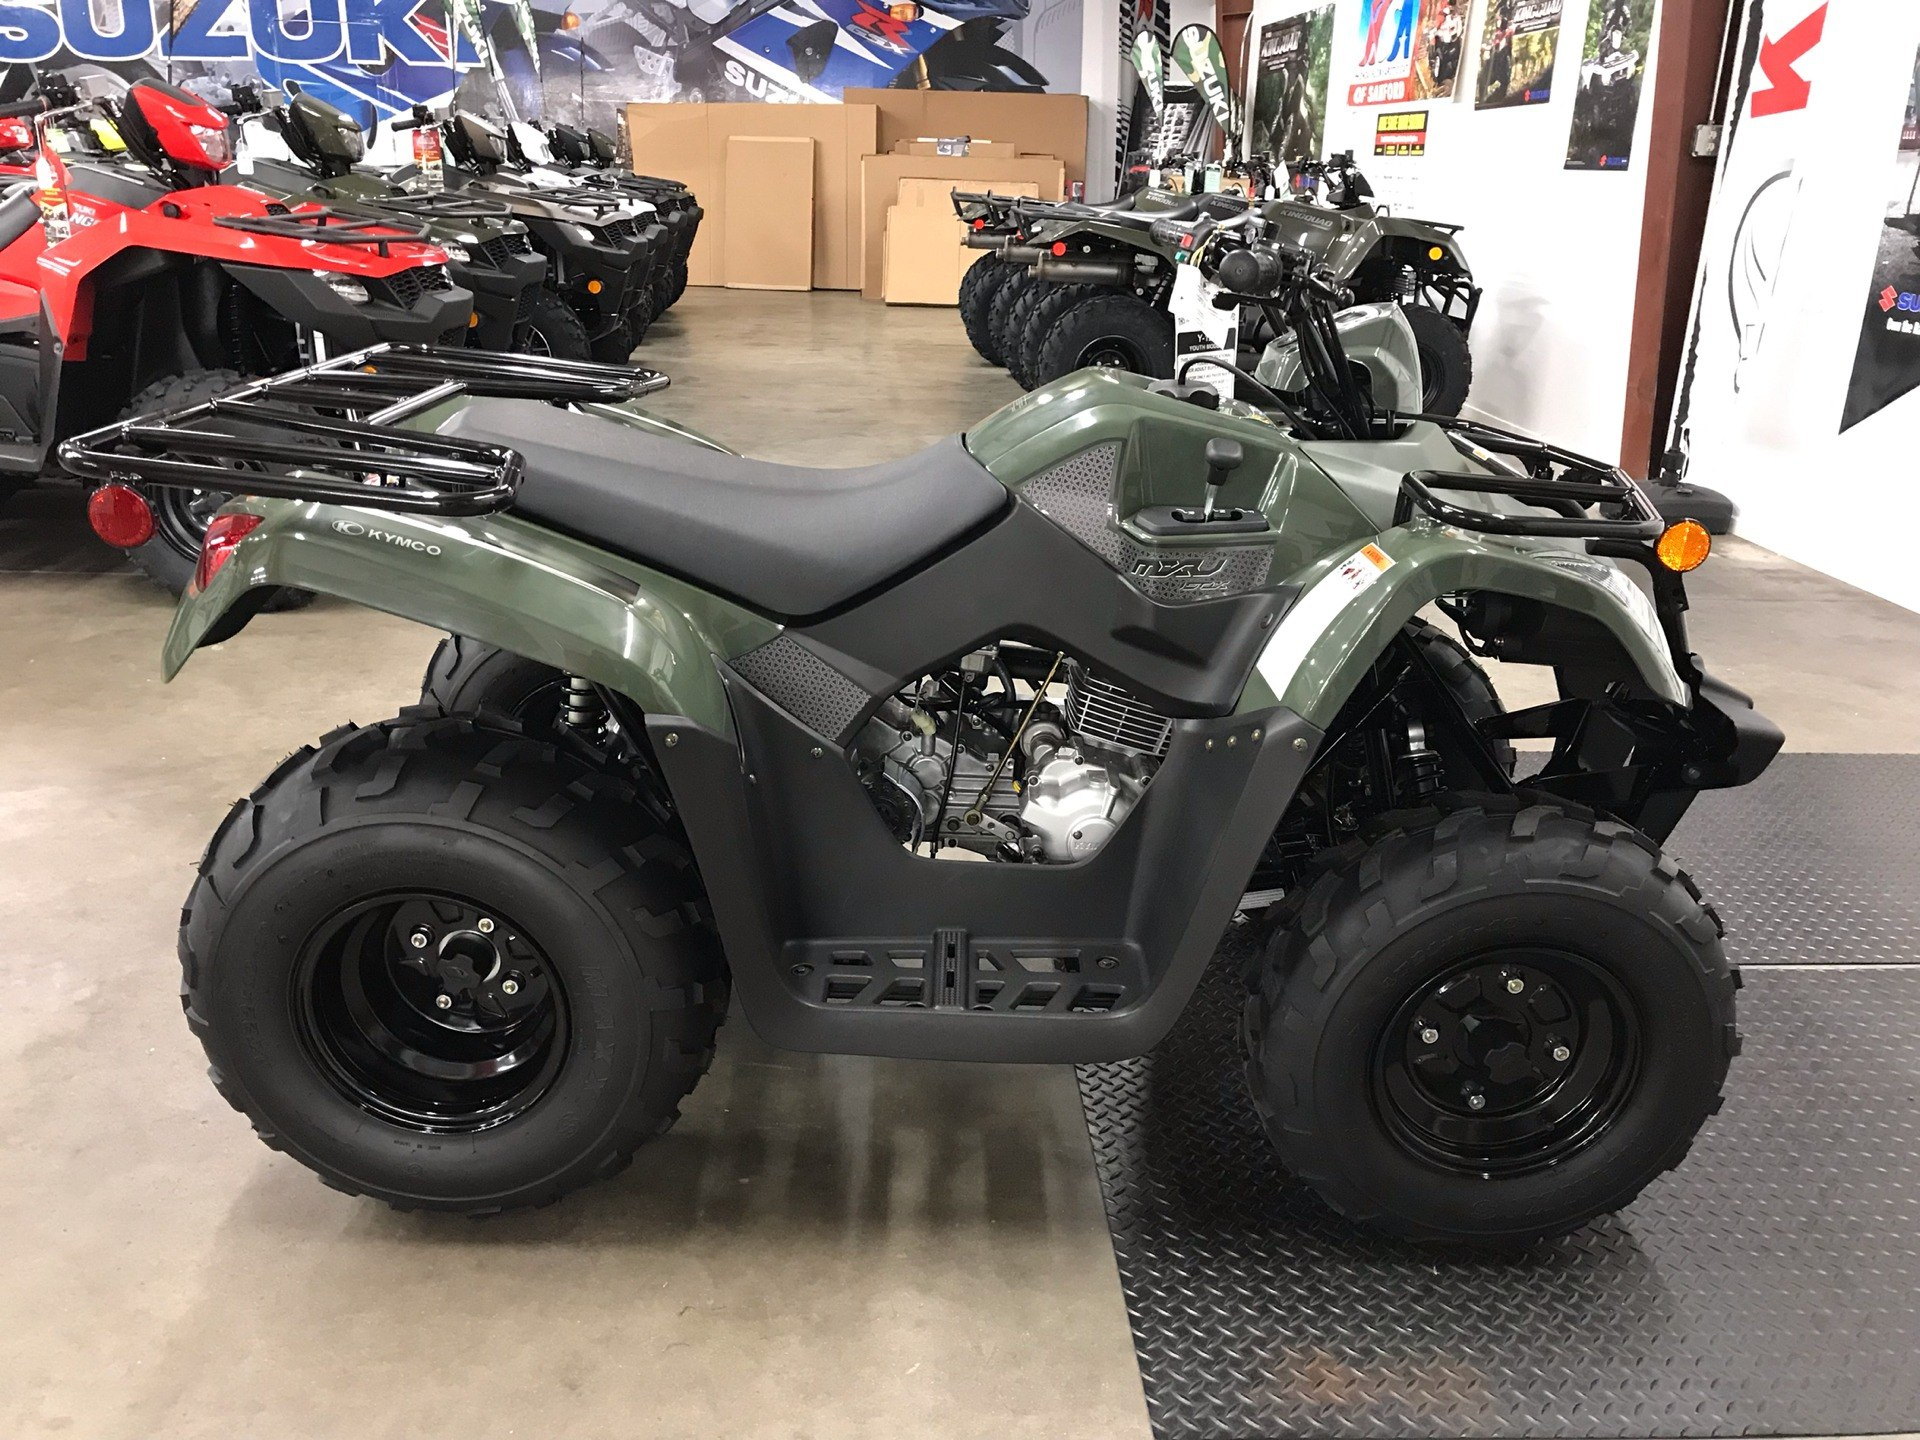 2019 Kymco MXU 150X in Sanford, North Carolina - Photo 2